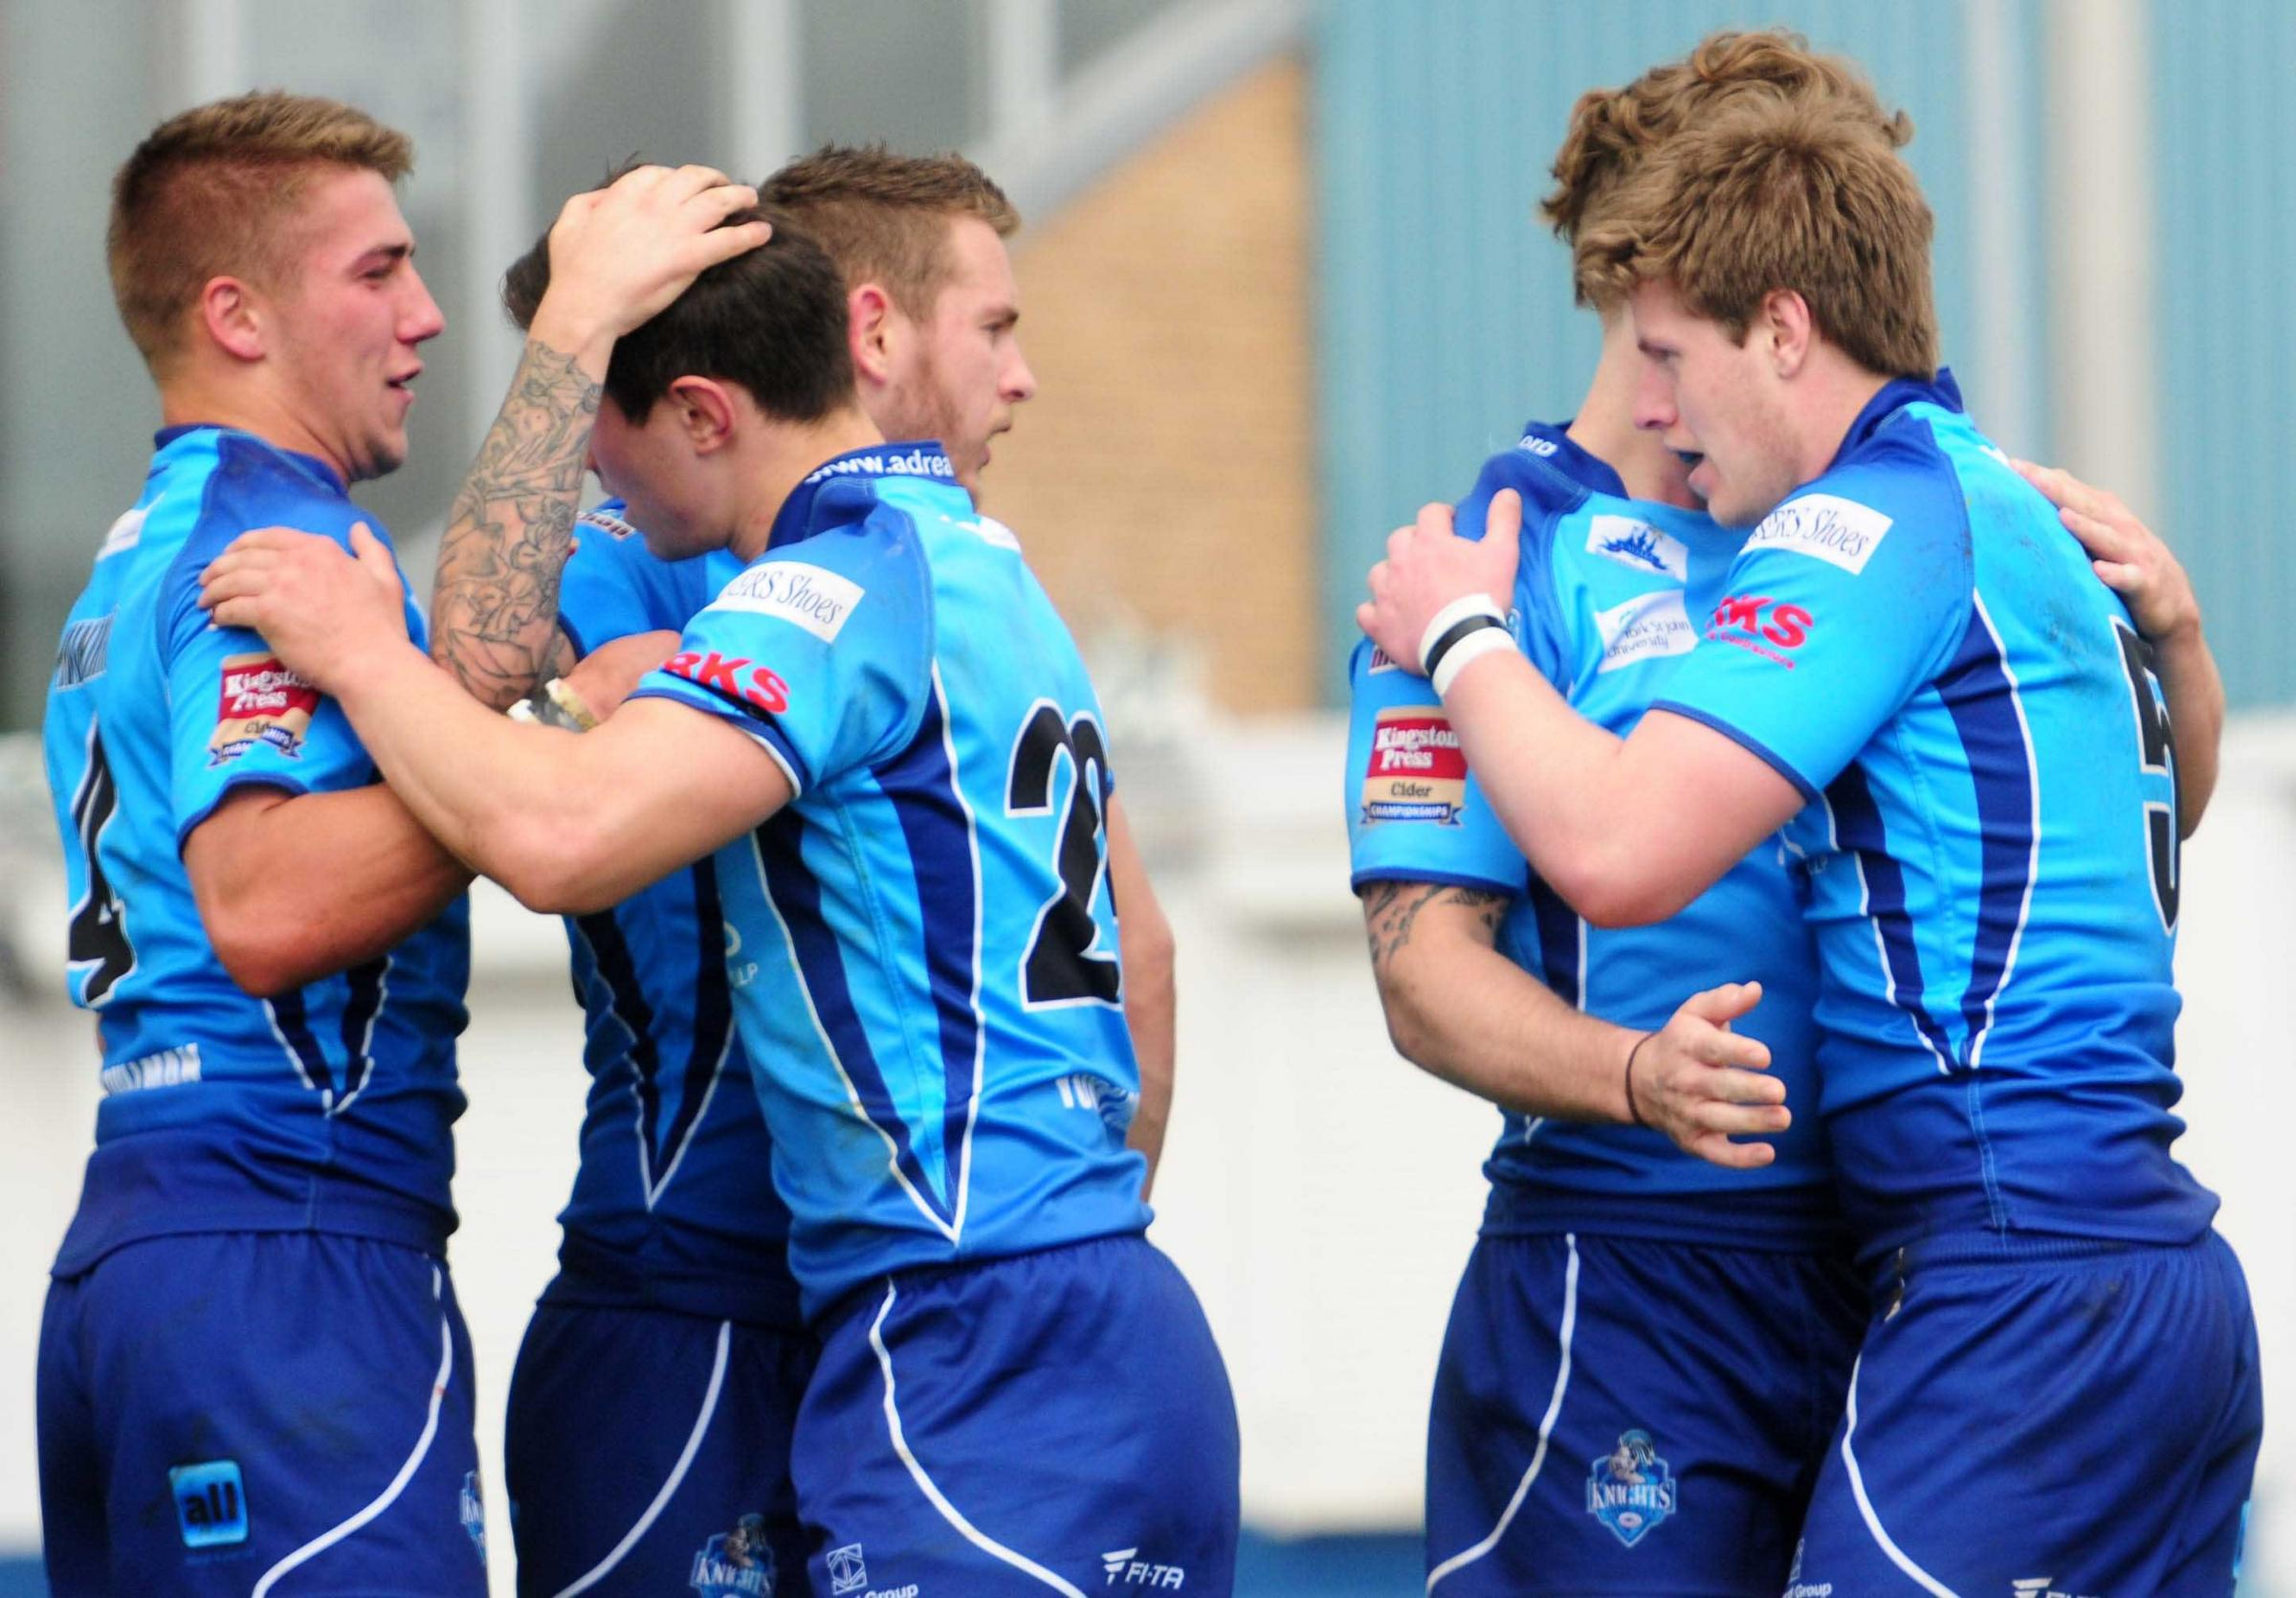 York City Knights 22, Hemel Stags 14